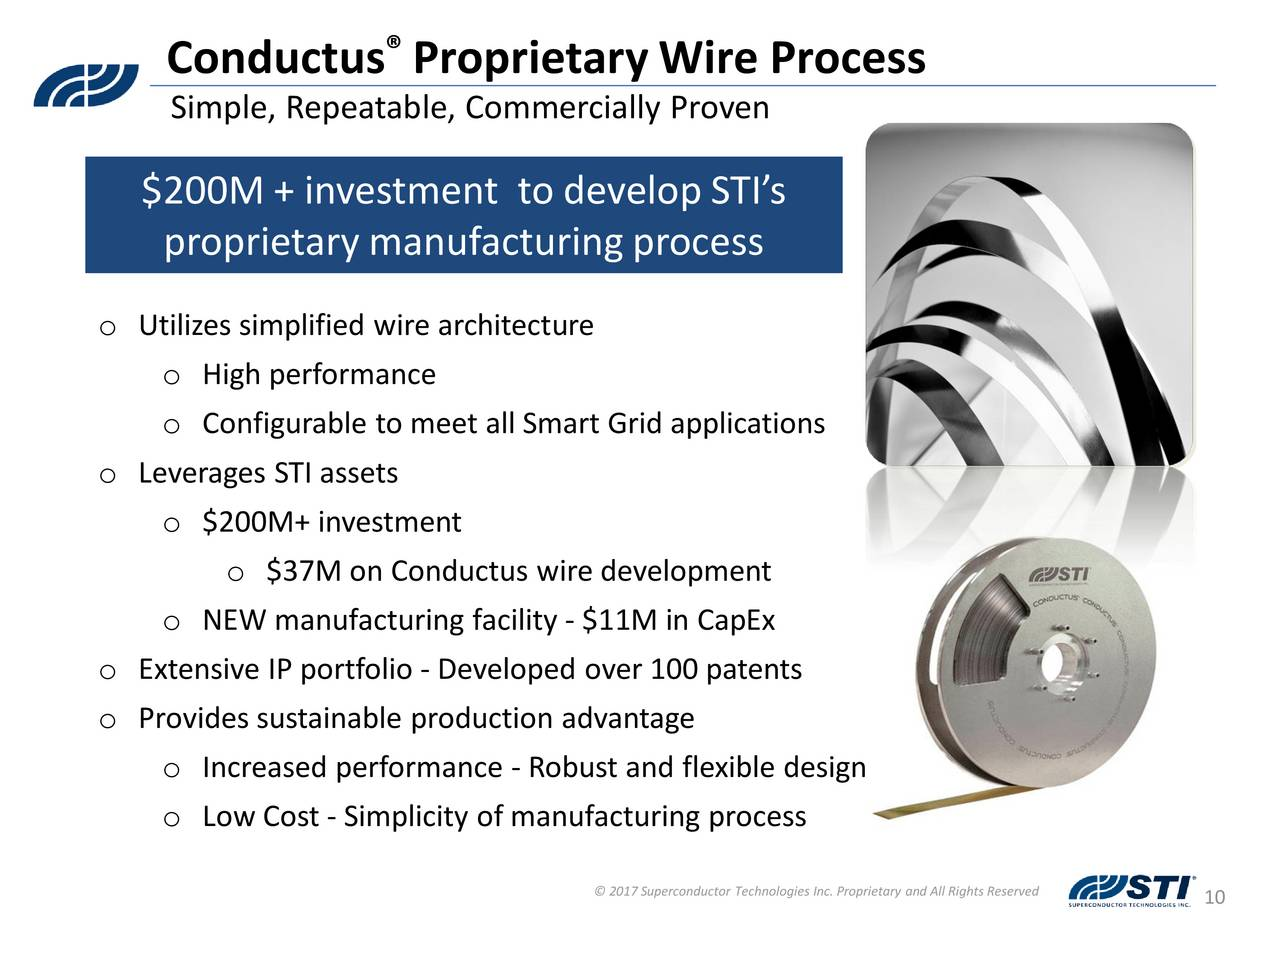 superconductor technologies Scon - superconductor technologies inc basic chart, quote and financial news from the leading provider and award-winning bigchartscom.